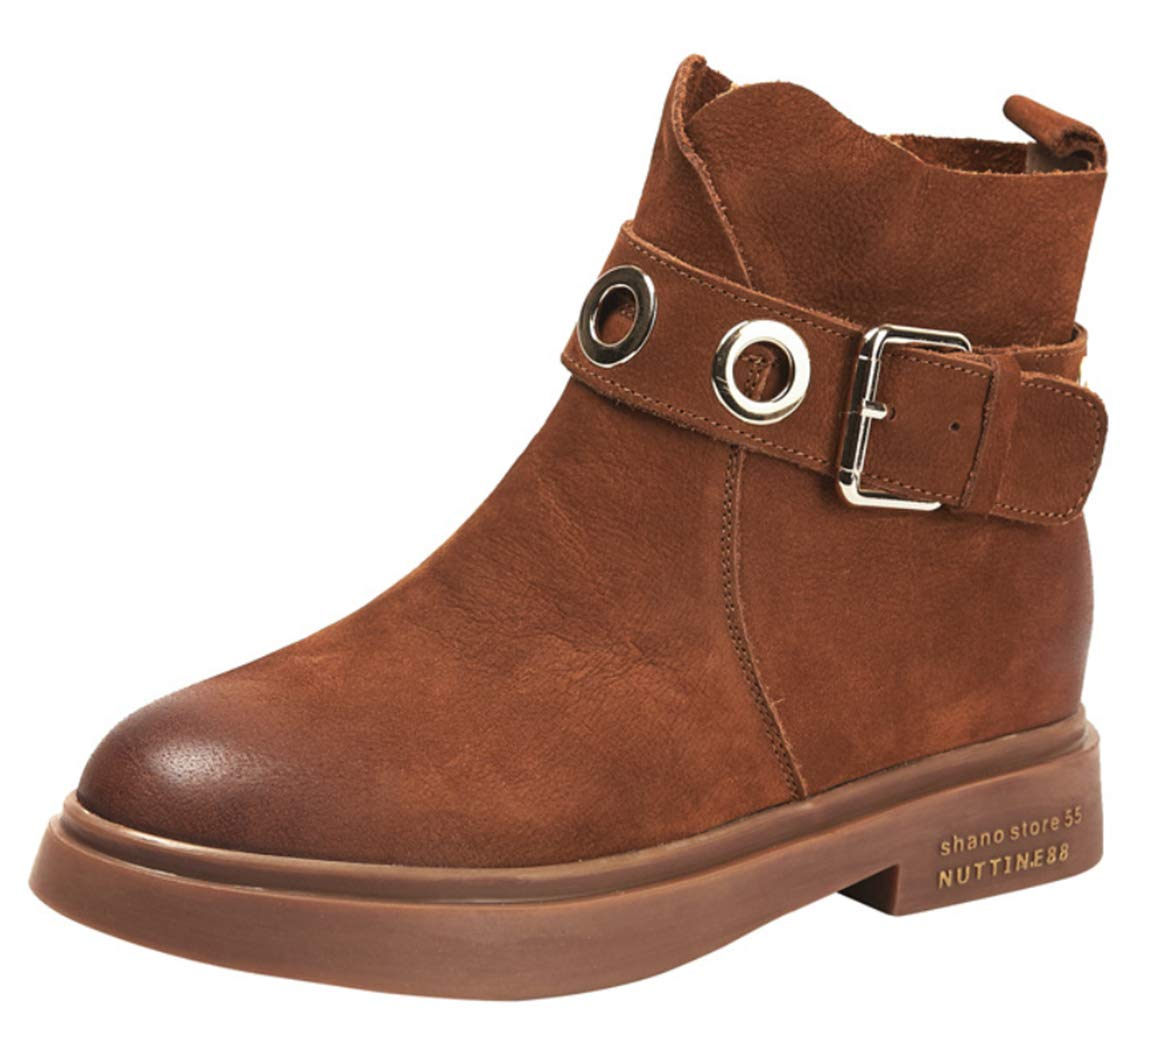 Caramelcolour Women's Martin Boots Female Leather Round Head mid Heel Ankle Boots Side Zipper Metal Buckle Retro Style Thick Heel Boots